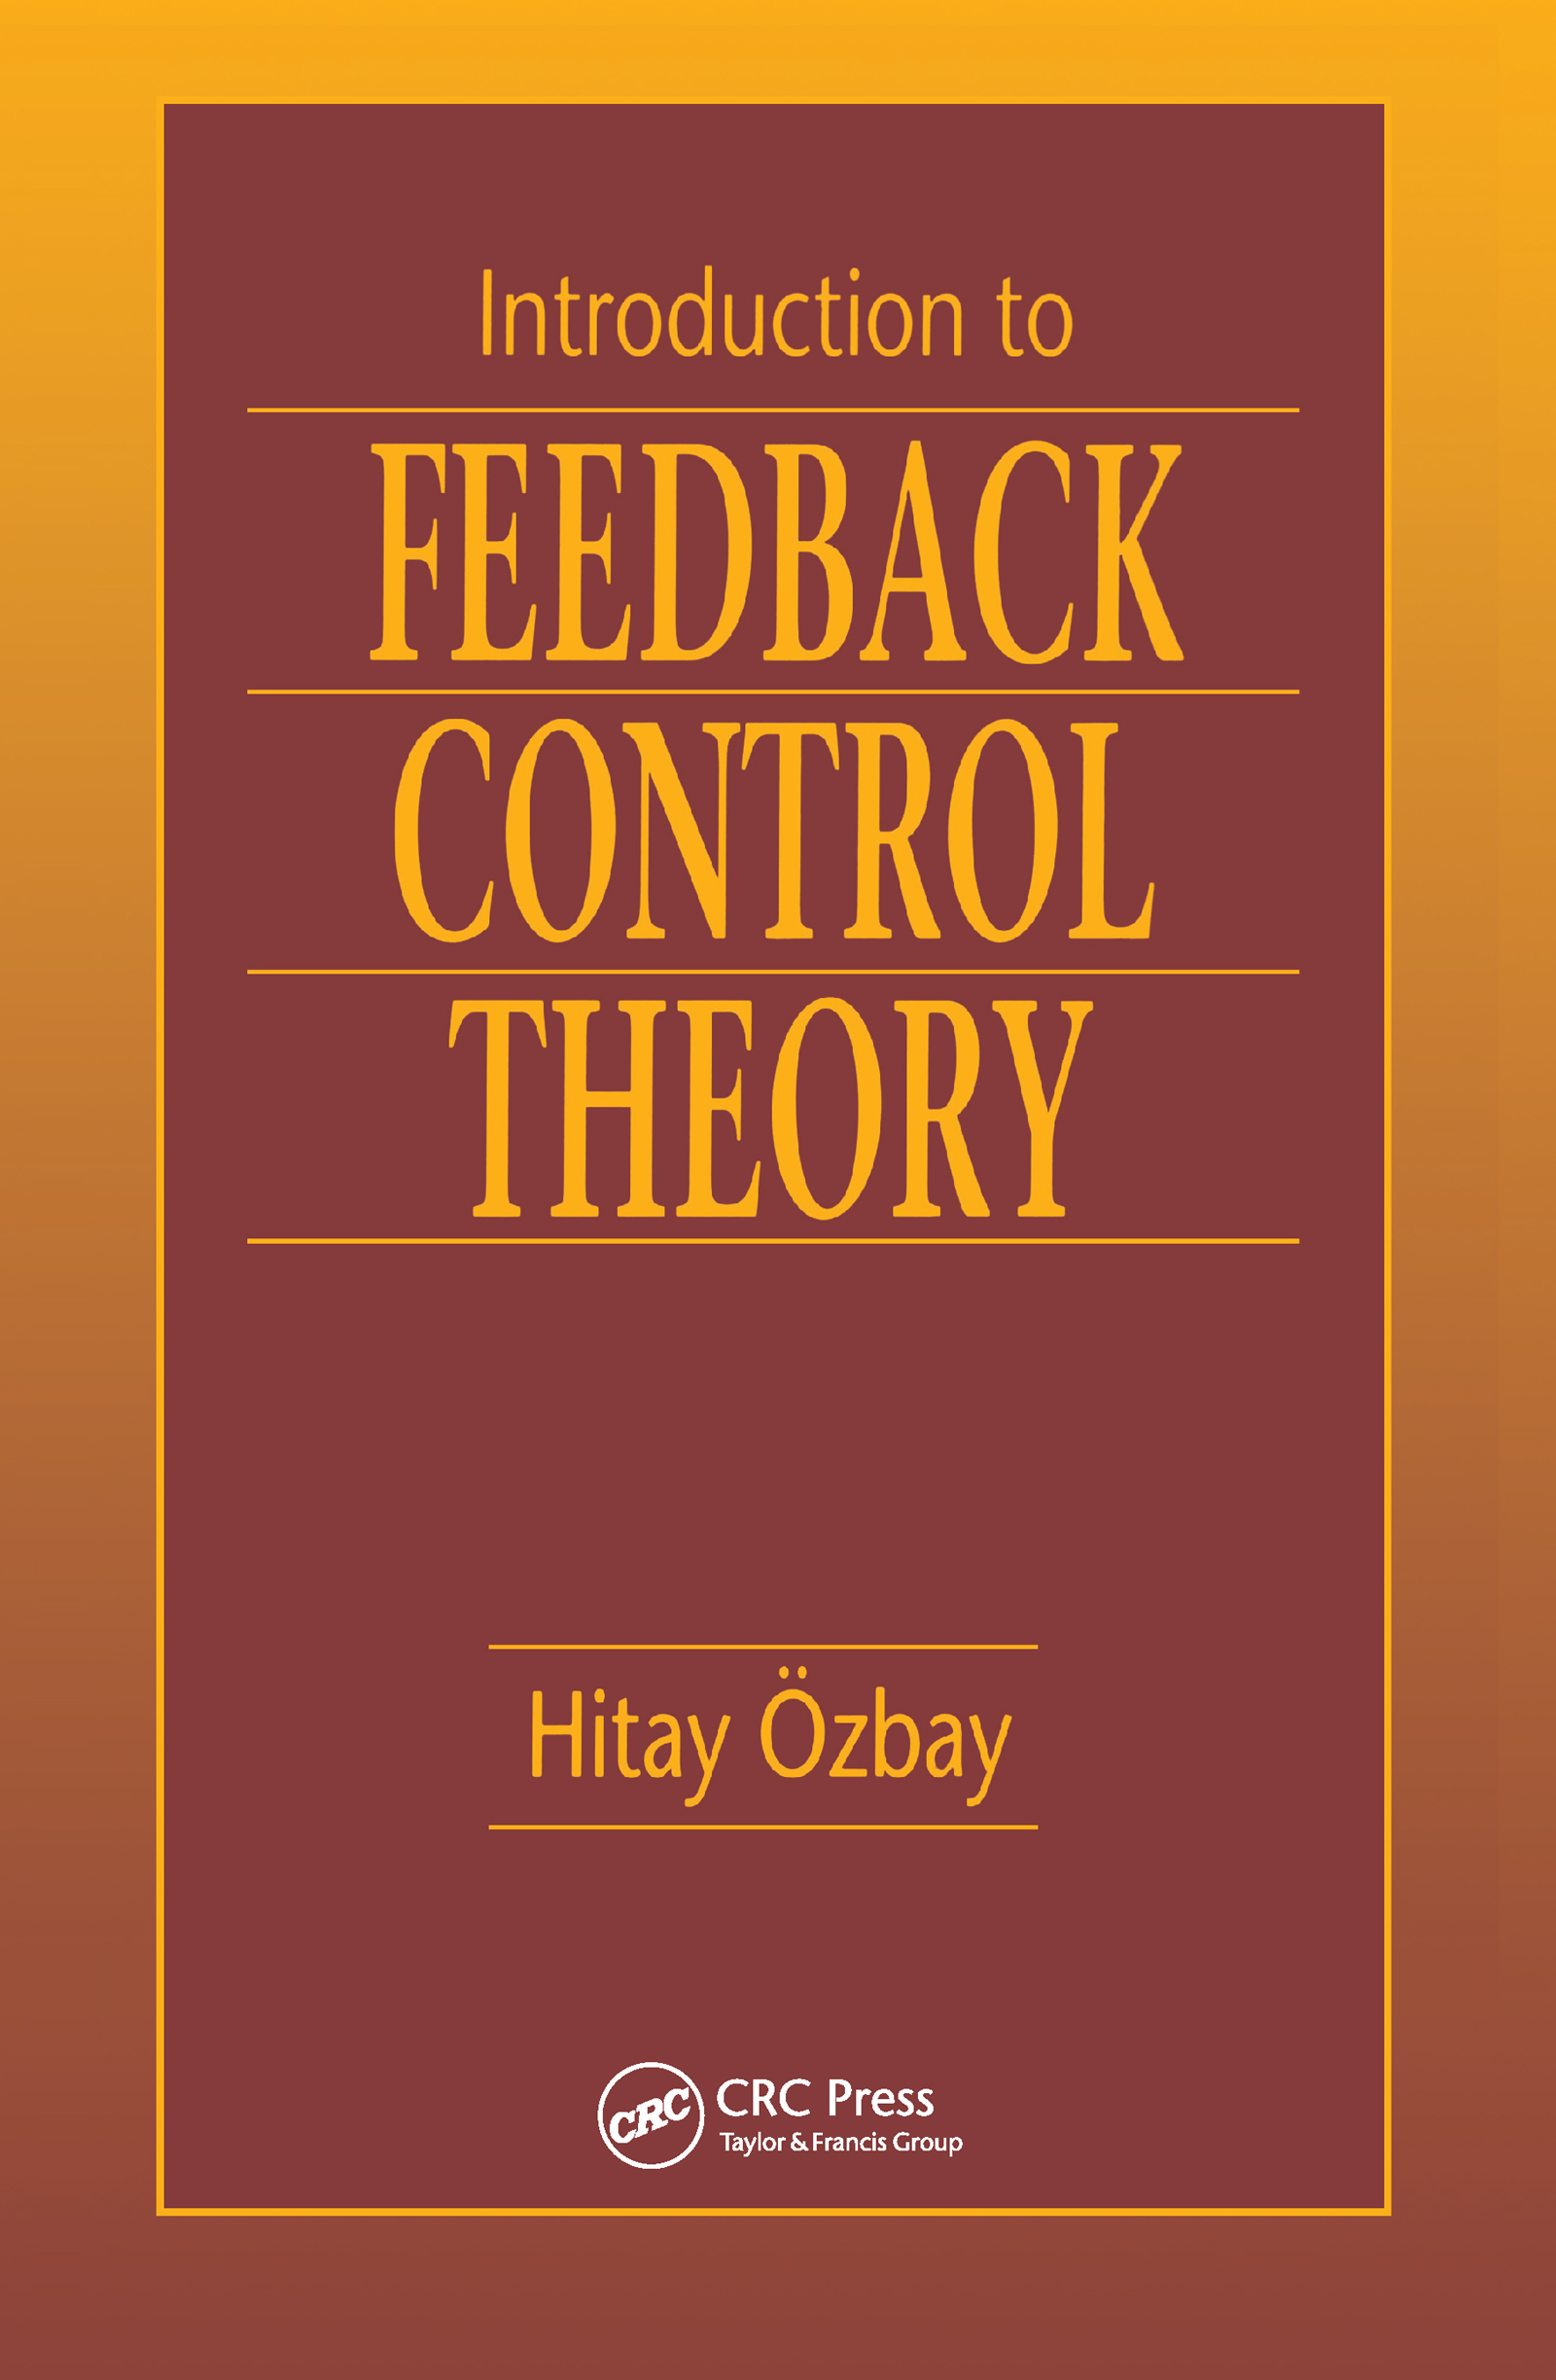 Introduction to Feedback Control Theory